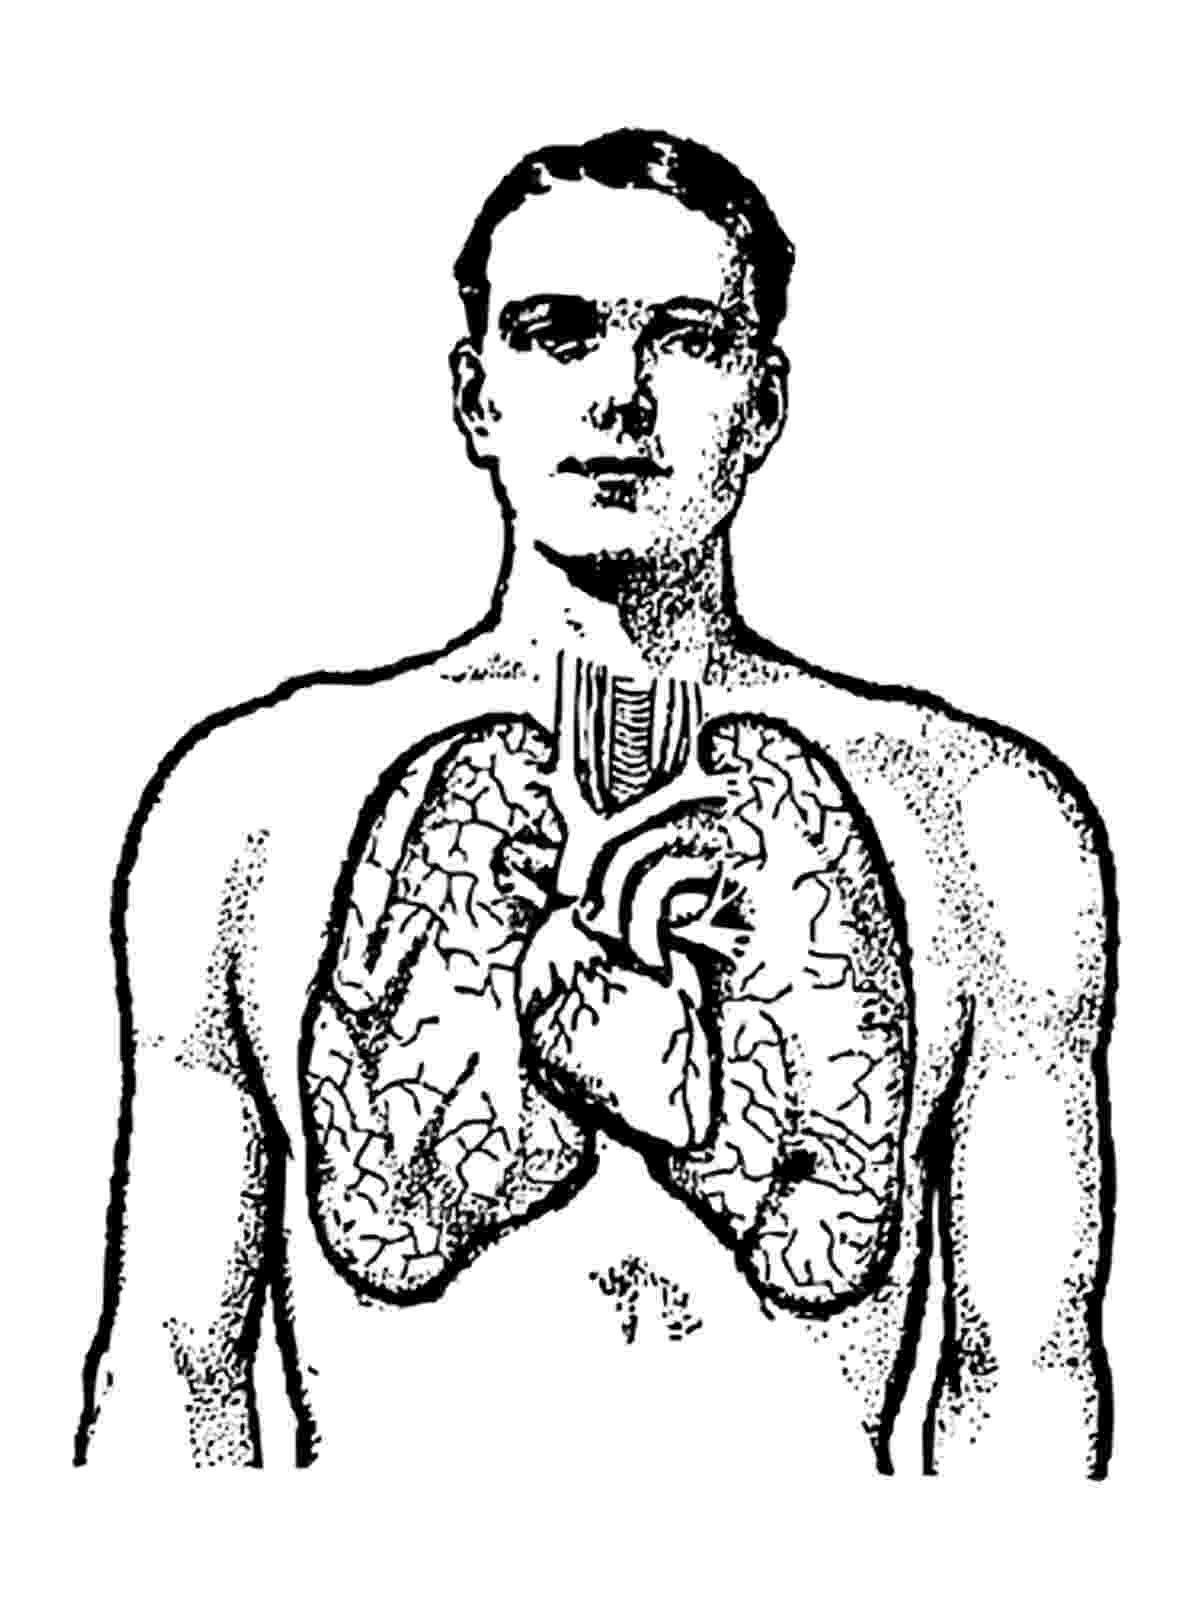 human body coloring book human body coloring pages to download and print for free human coloring book body